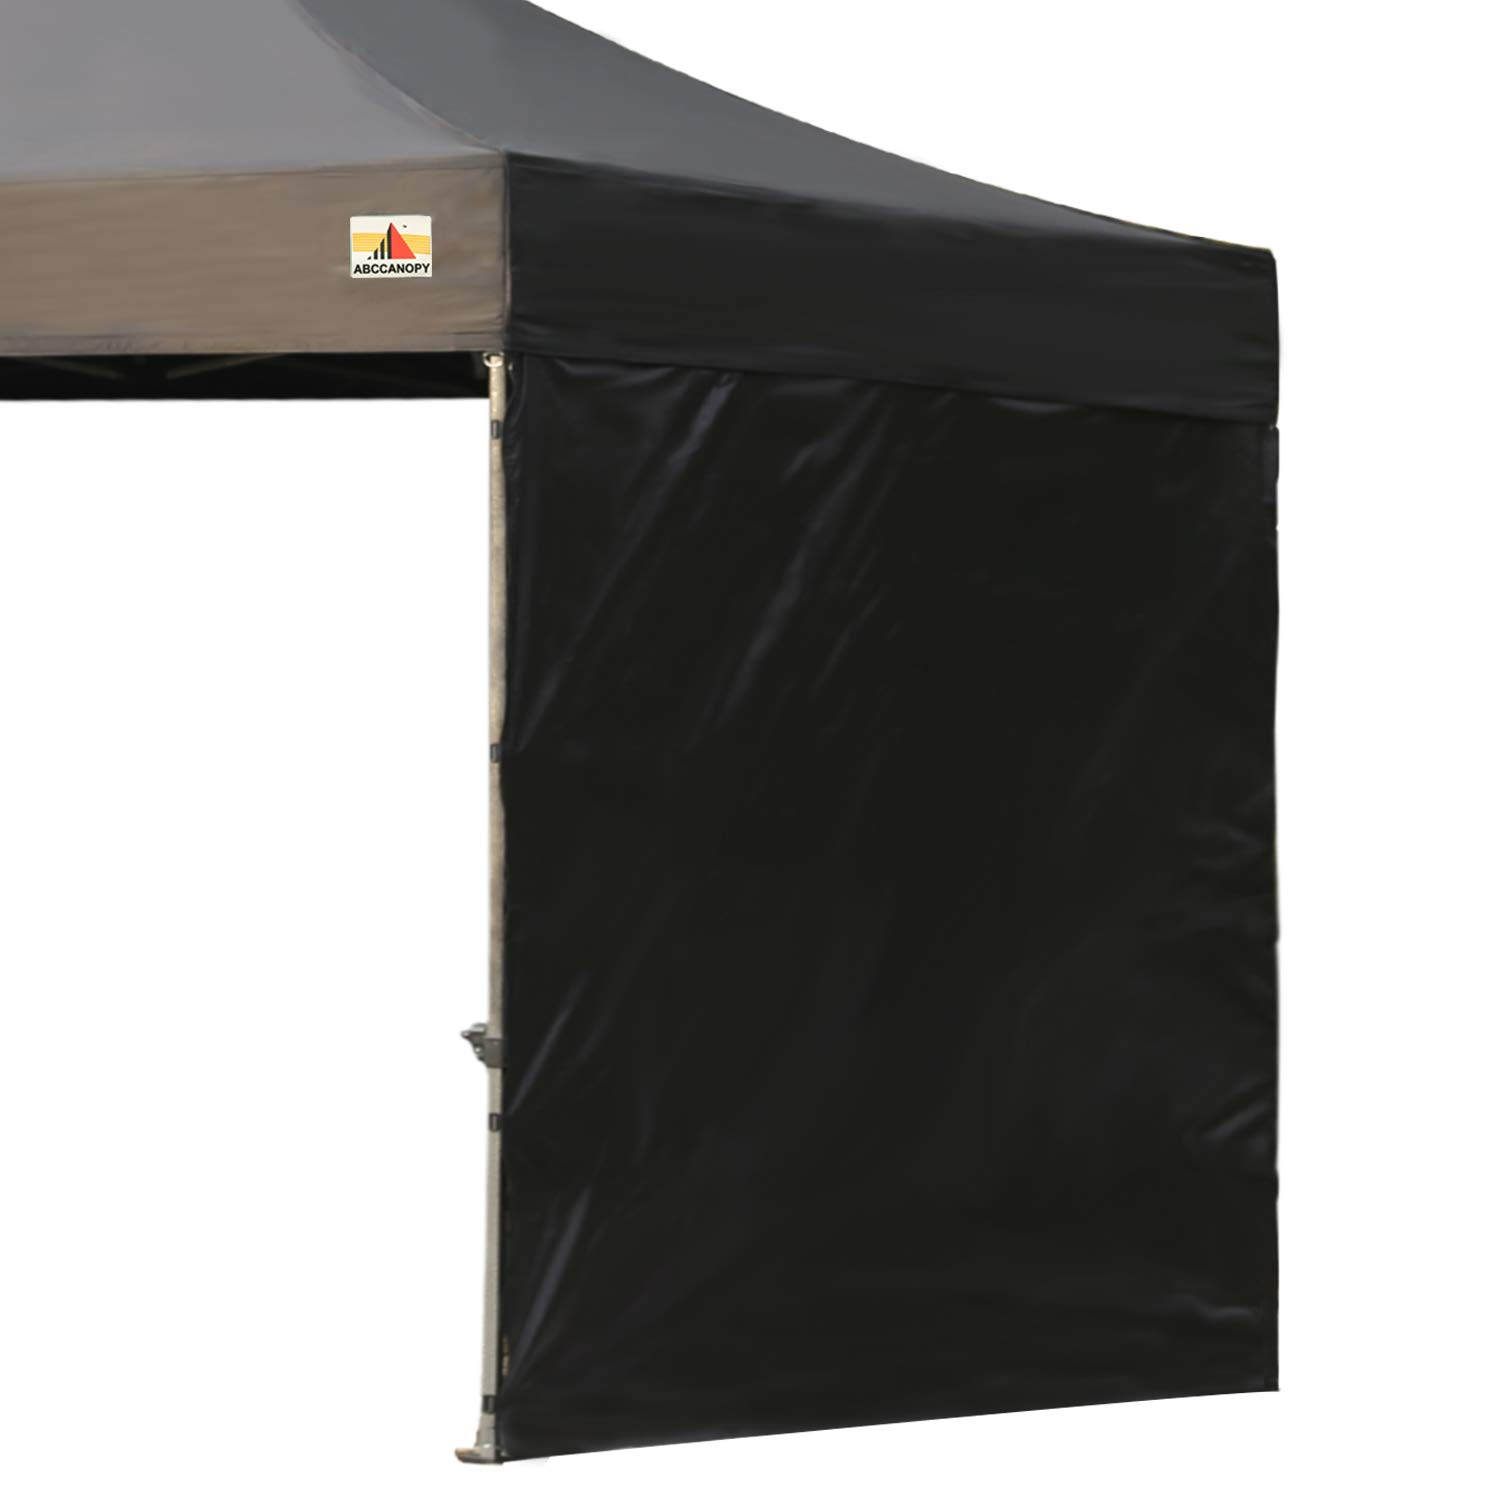 ABCCANOPY 15+Colors 10' Sun Wall for 10'x 10' Straight Leg pop up Canopy, 10' Sidewall kit (1 Panel) with Truss Straps (Black) by ABCCANOPY